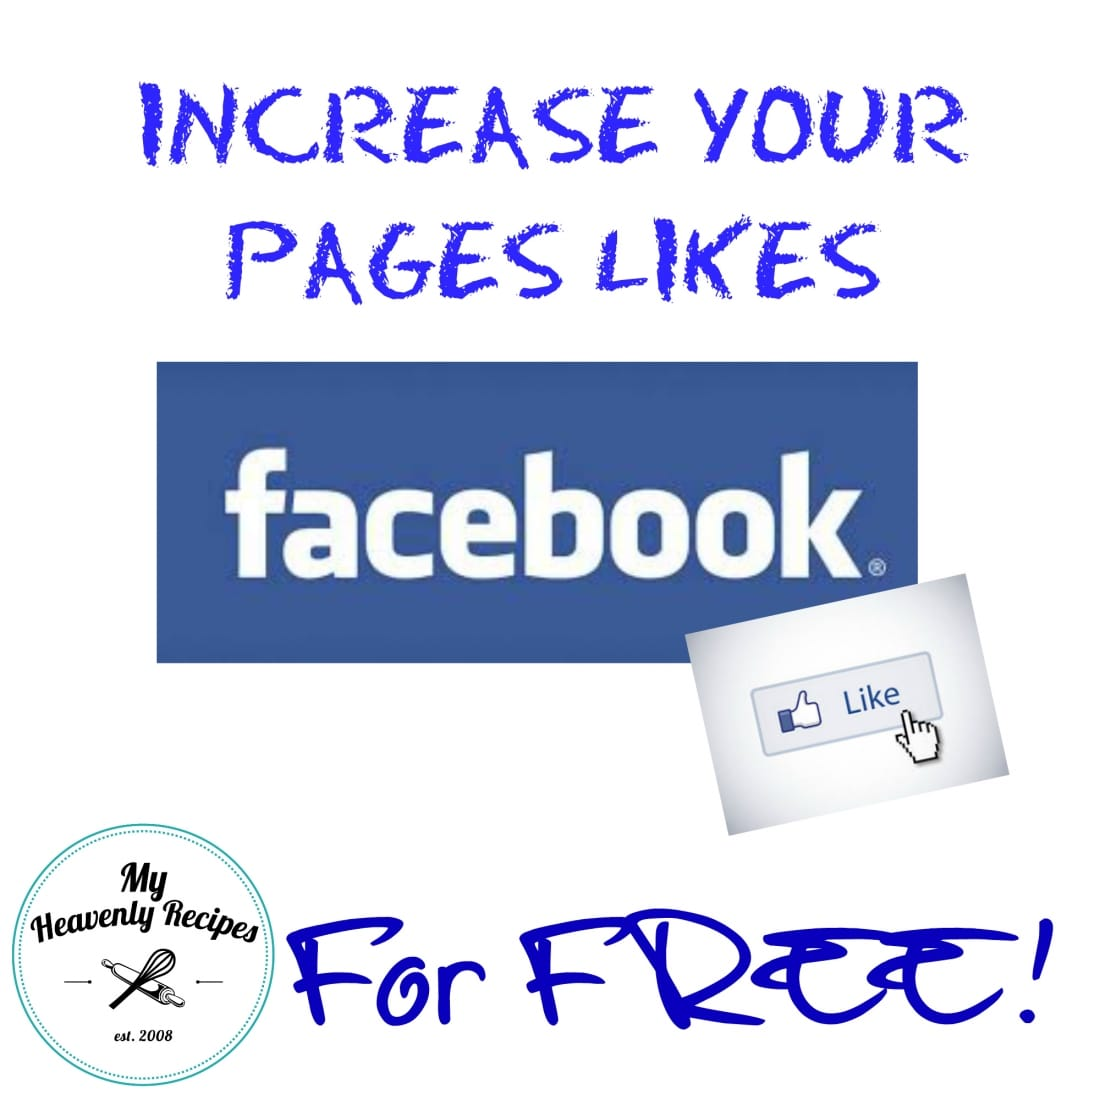 How to Increase Your Facebook Likes on Your Page